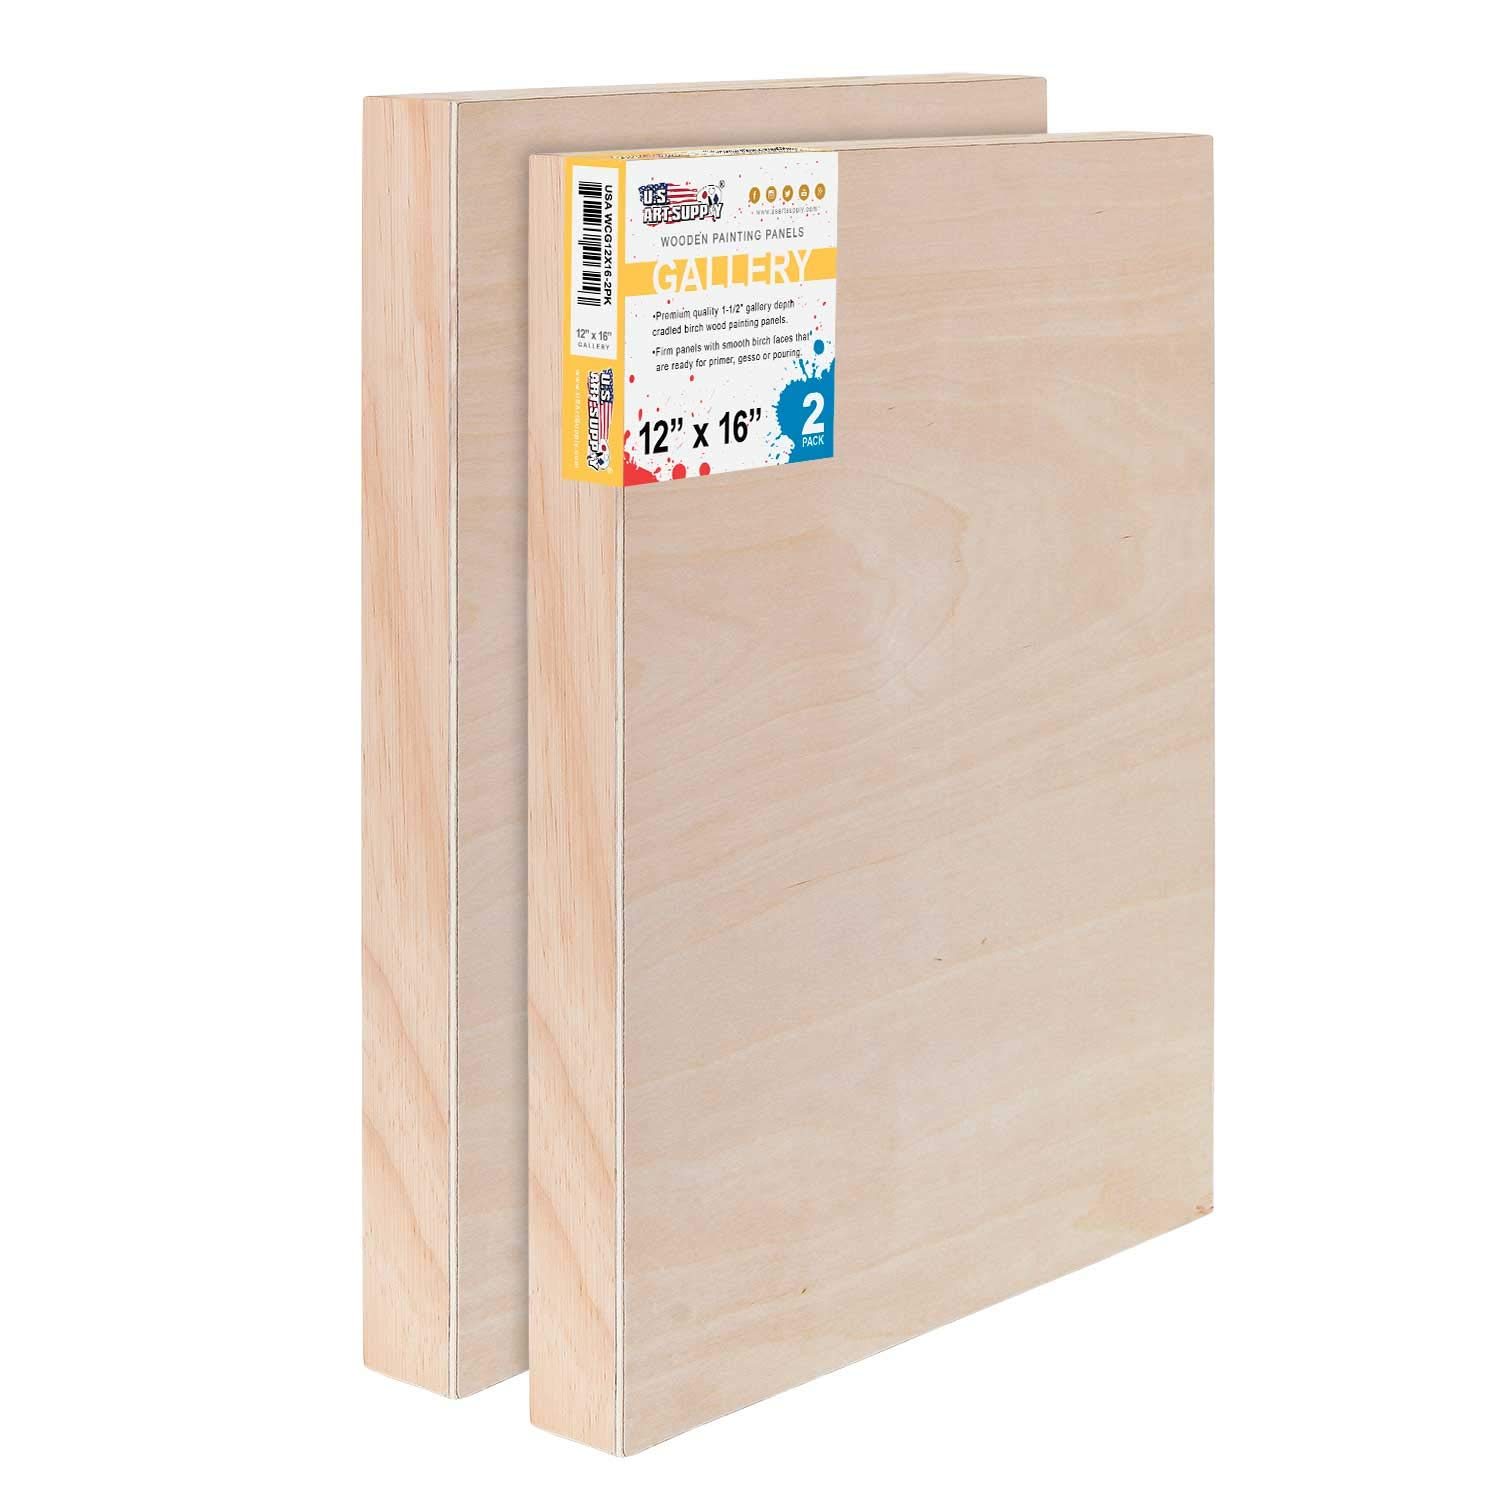 U.S. Art Supply 12'' x 16'' Birch Wood Paint Pouring Panel Boards, Gallery 1-1/2'' Deep Cradle (Pack of 2) - Artist Depth Wooden Wall Canvases - Painting Mixed-Media Craft, Acrylic, Oil, Encaustic